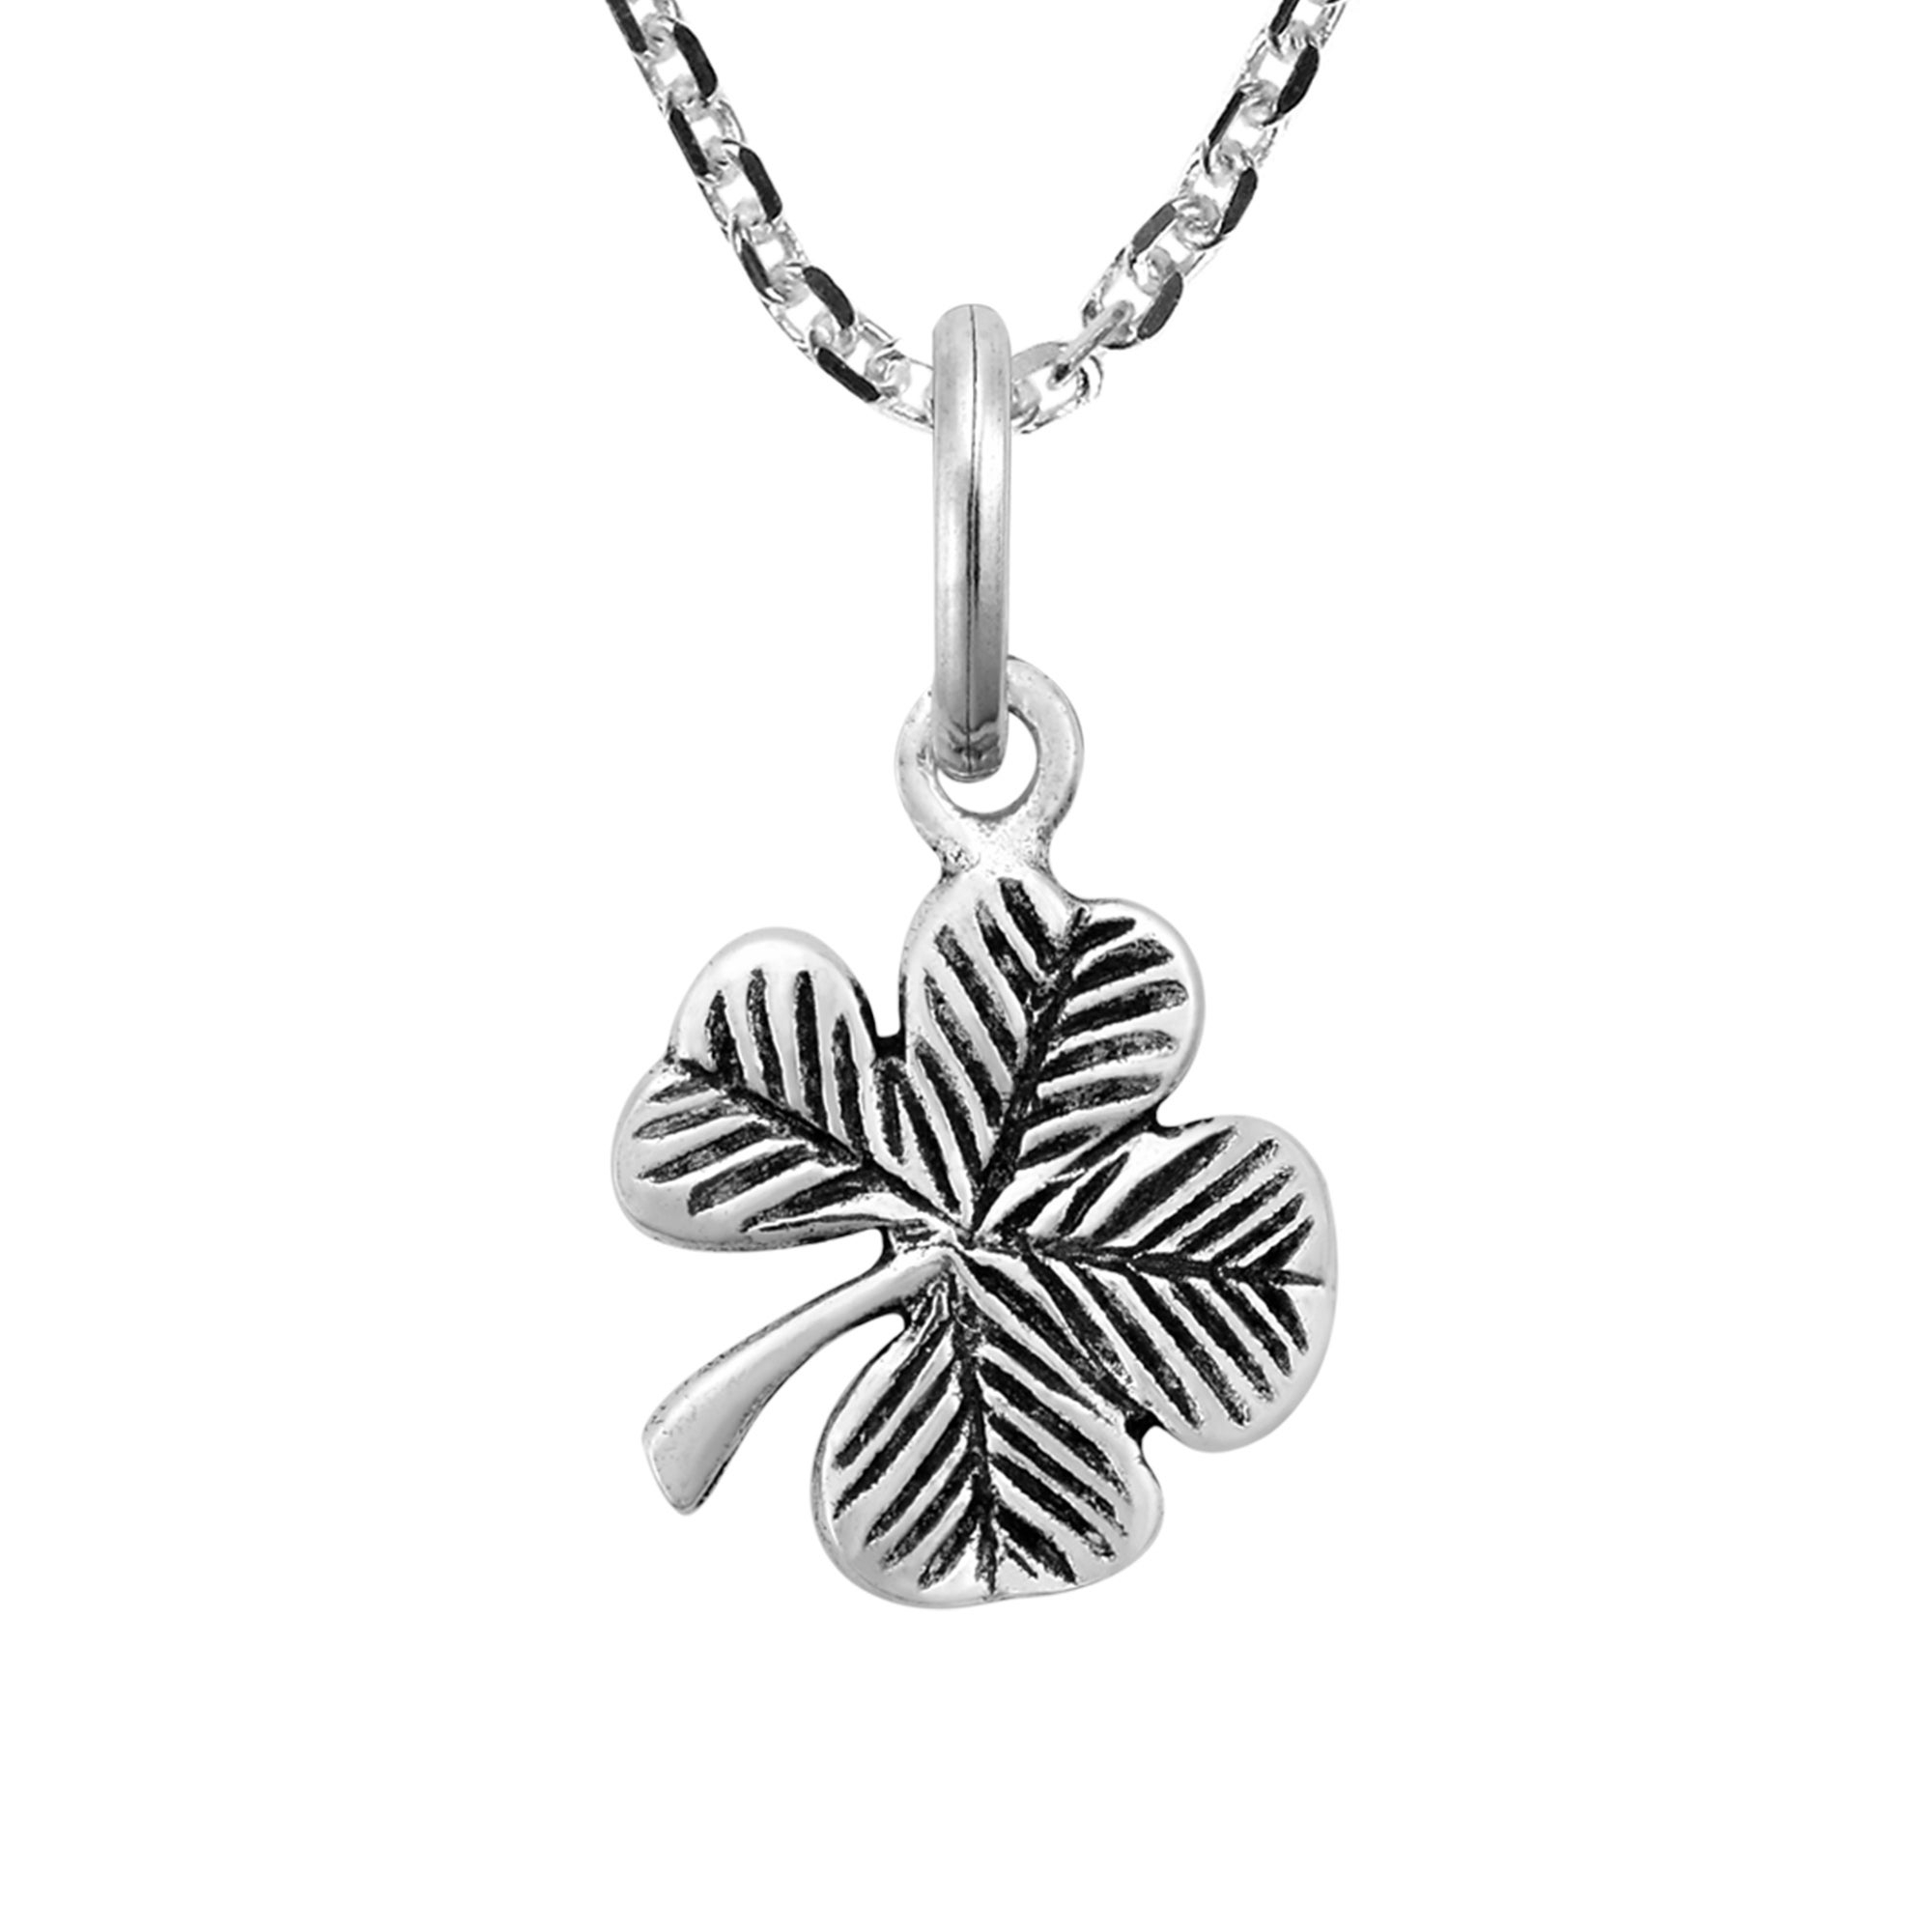 Shop Handmade Lucky Charm Sterling Silver Four Leaf Clover Pendant With Current Lucky Four Leaf Clover Pendant Necklaces (Gallery 13 of 25)